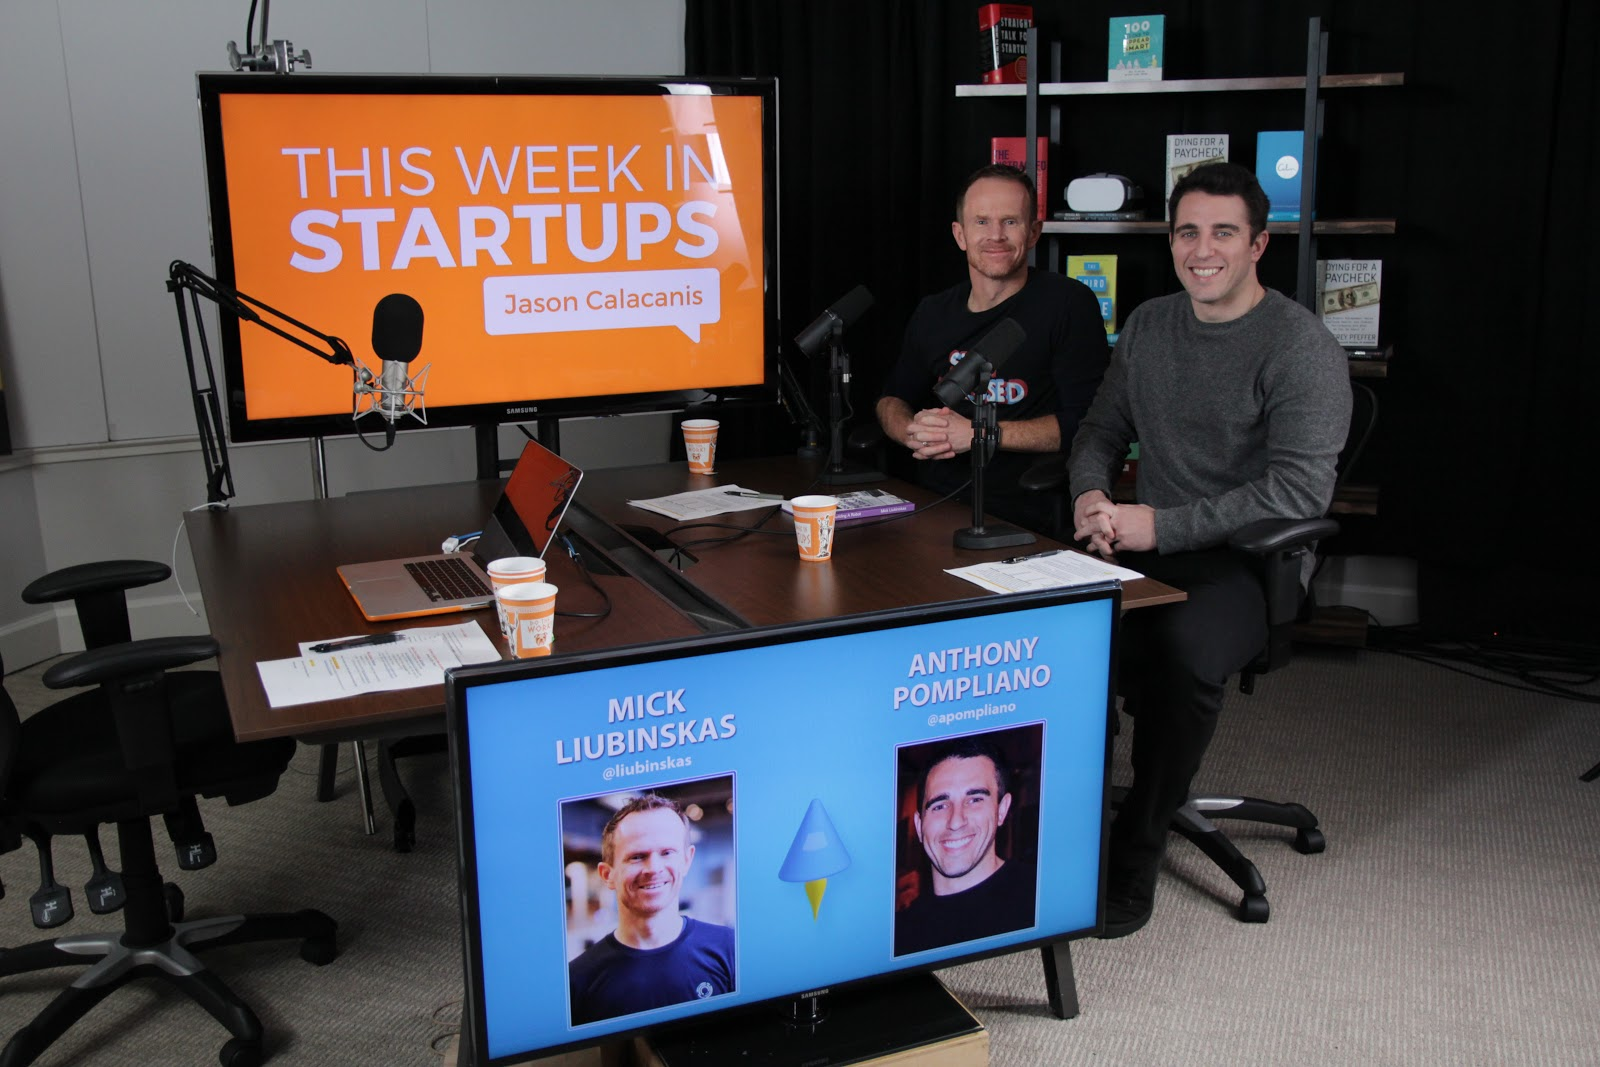 This week in startups bitcoins elevenfold betting tips